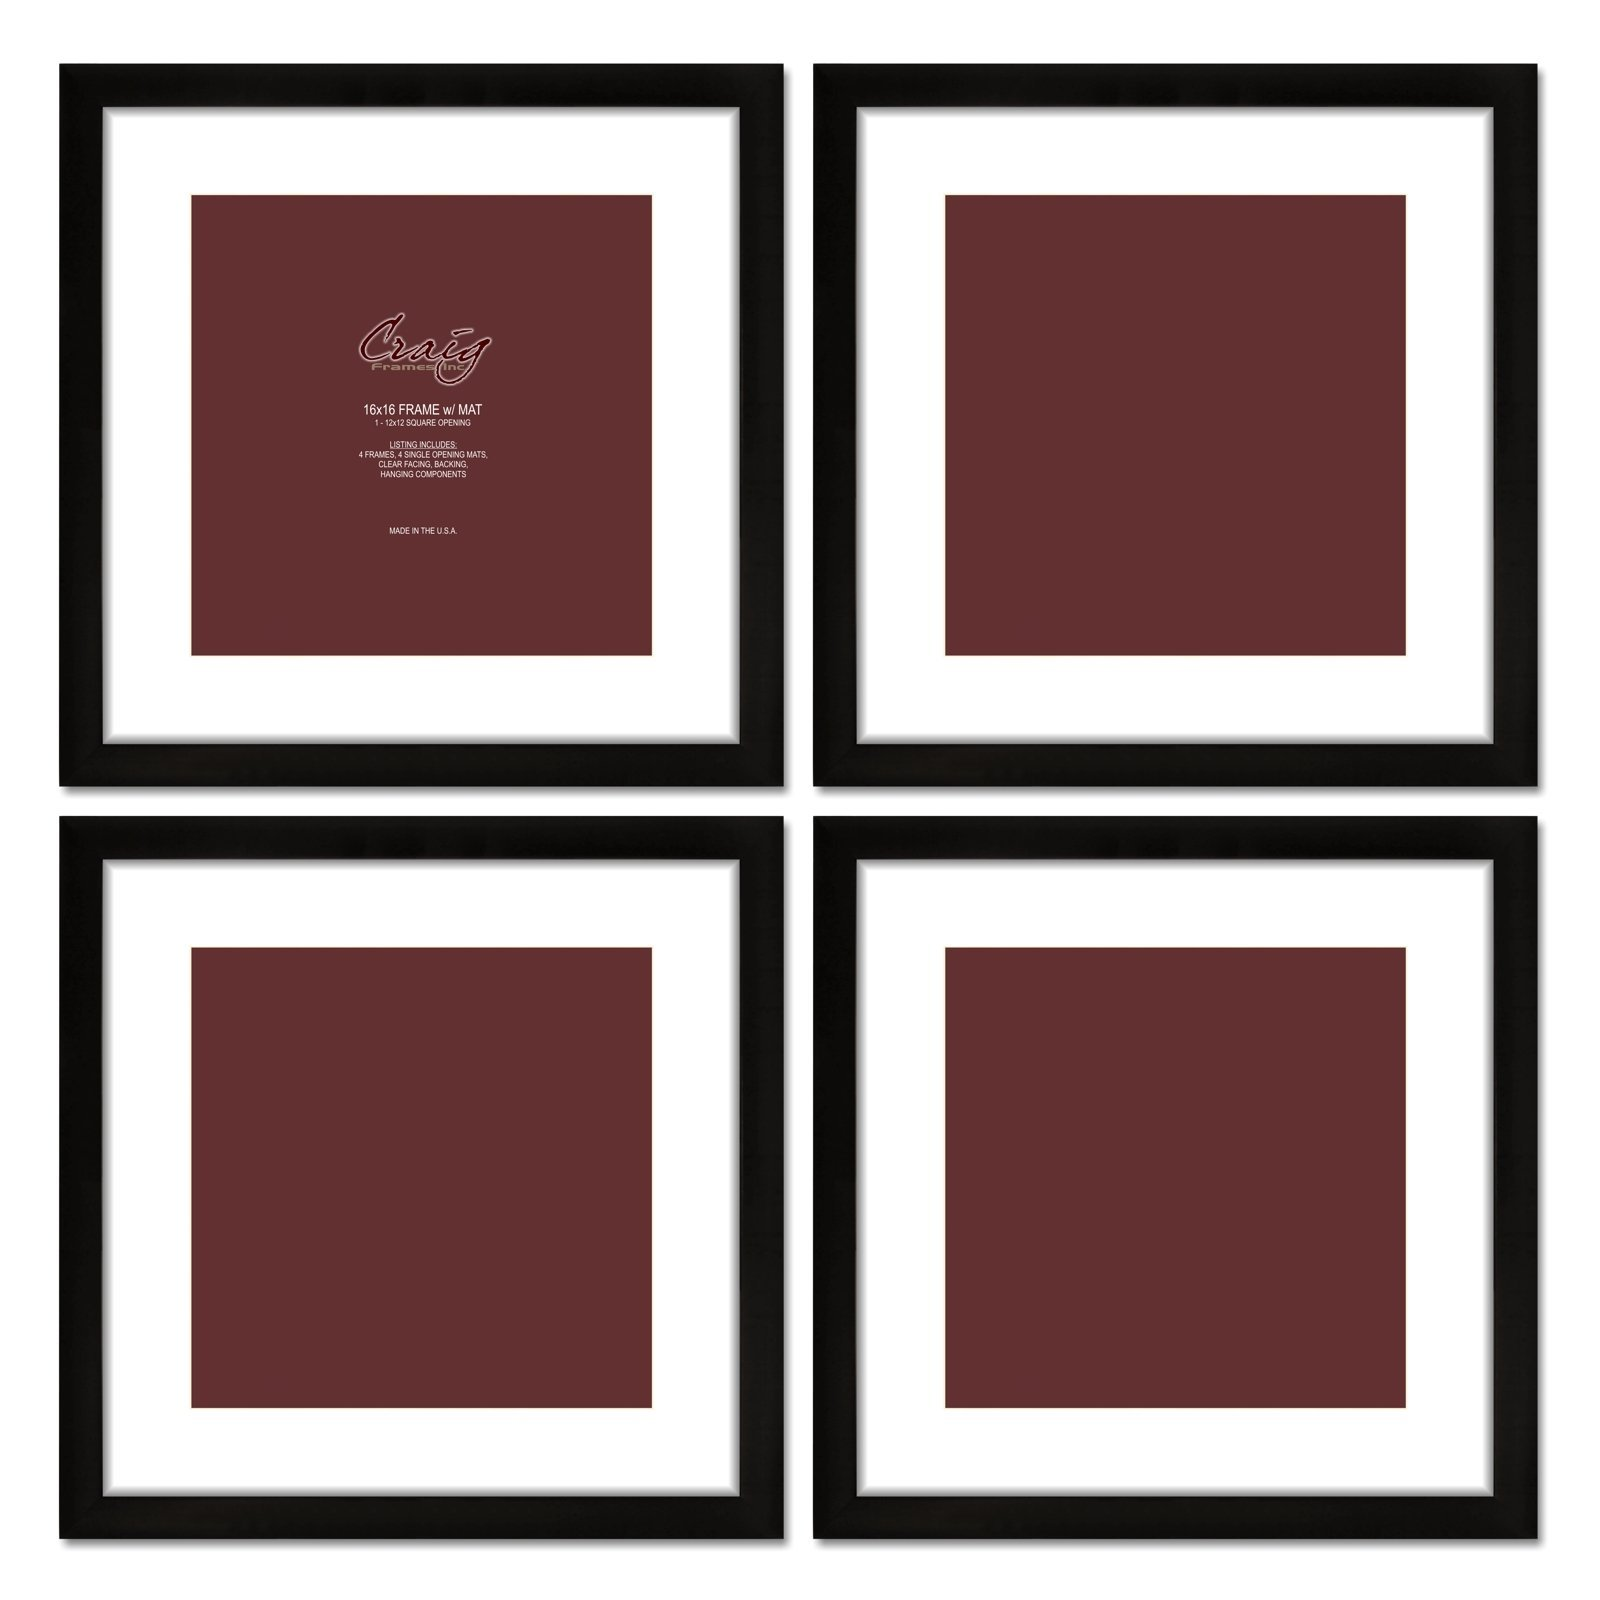 Craig Frames 1WB3BK 16 by 16-Inch Black Picture Frame, White Mat with 12 by 12-Inch Opening, 4-Piece Set by Craig Frames